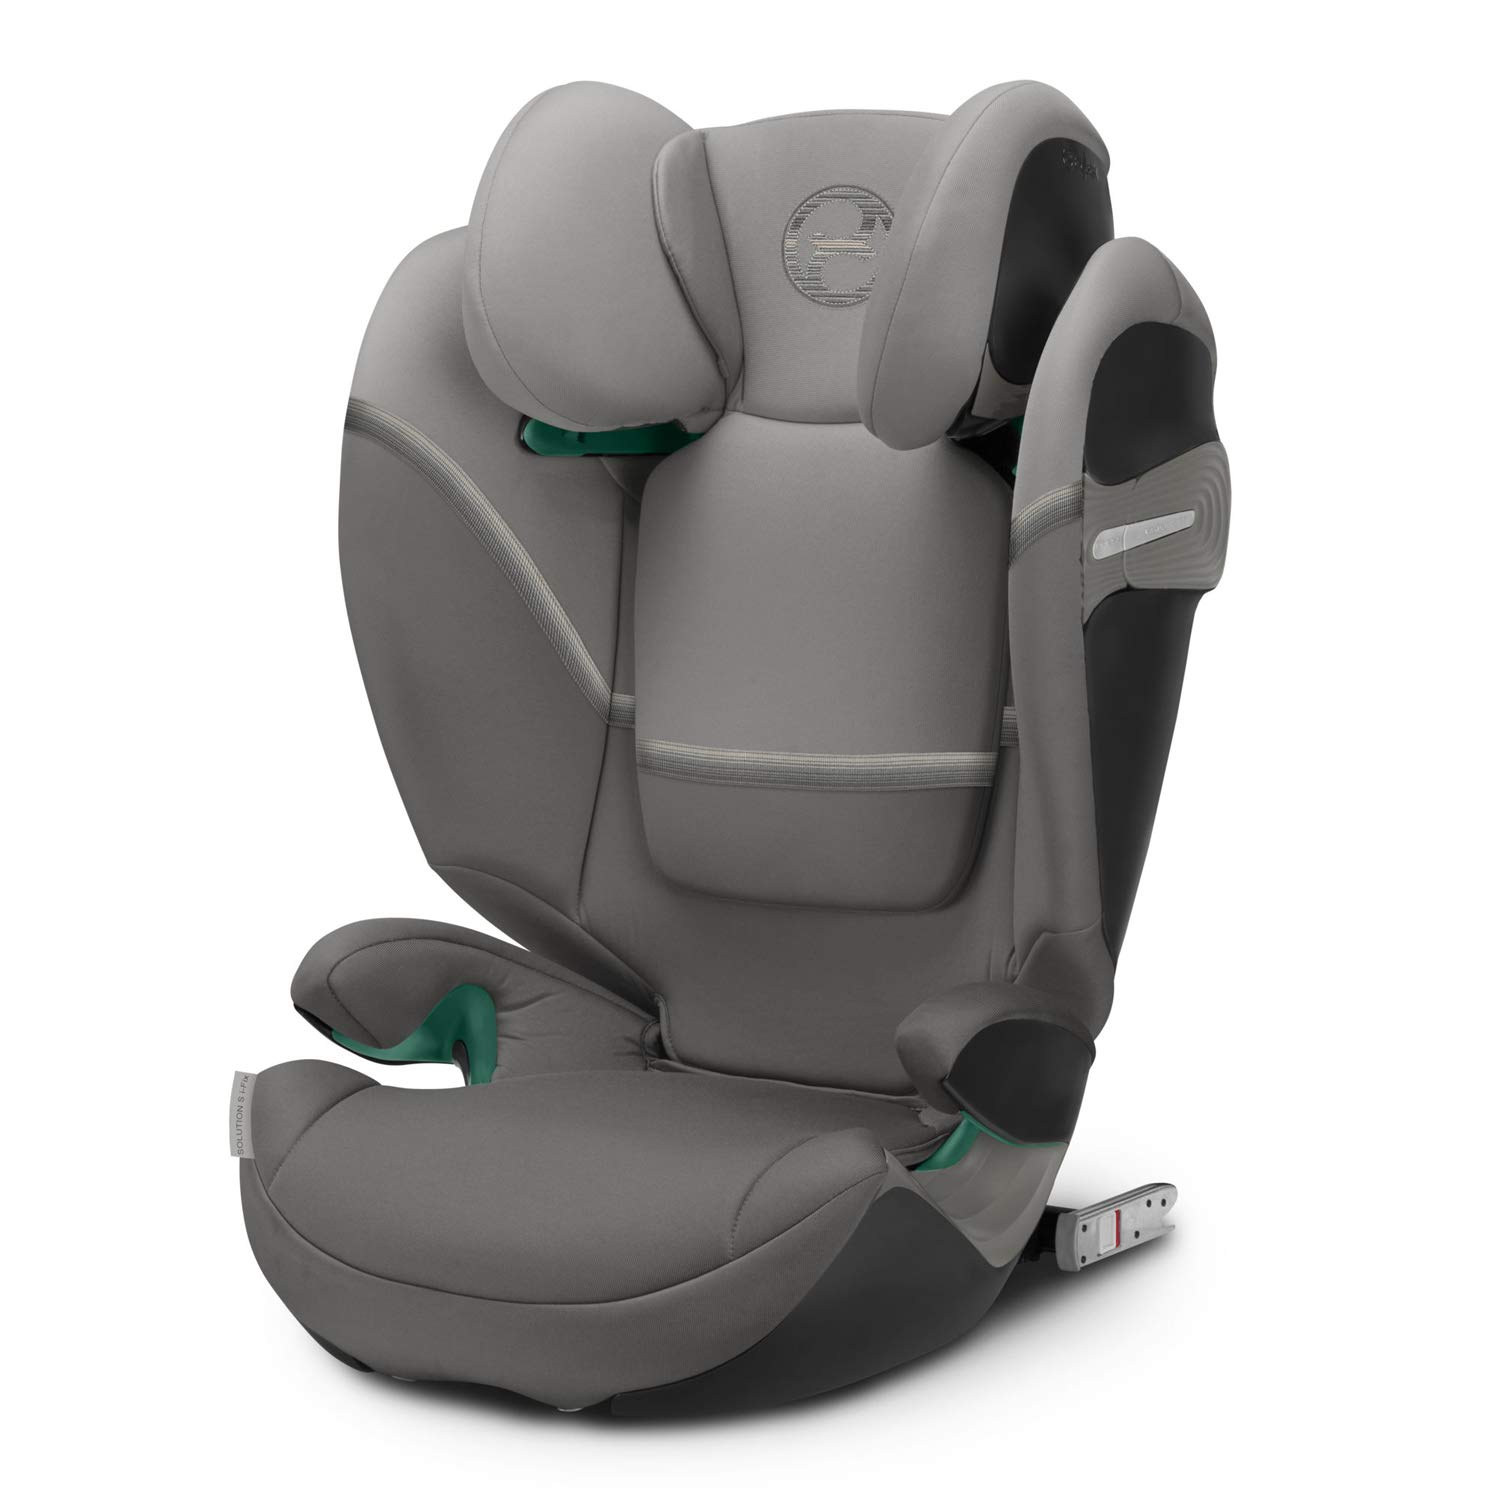 CYBEX Gold Solution S i-Fix Child's Car Seat, Tested Latest UN 129/03 Safety Standard, Group 2/3 (15-36 kg), From Approx. 3 to Approx. 12 years, Soho Grey